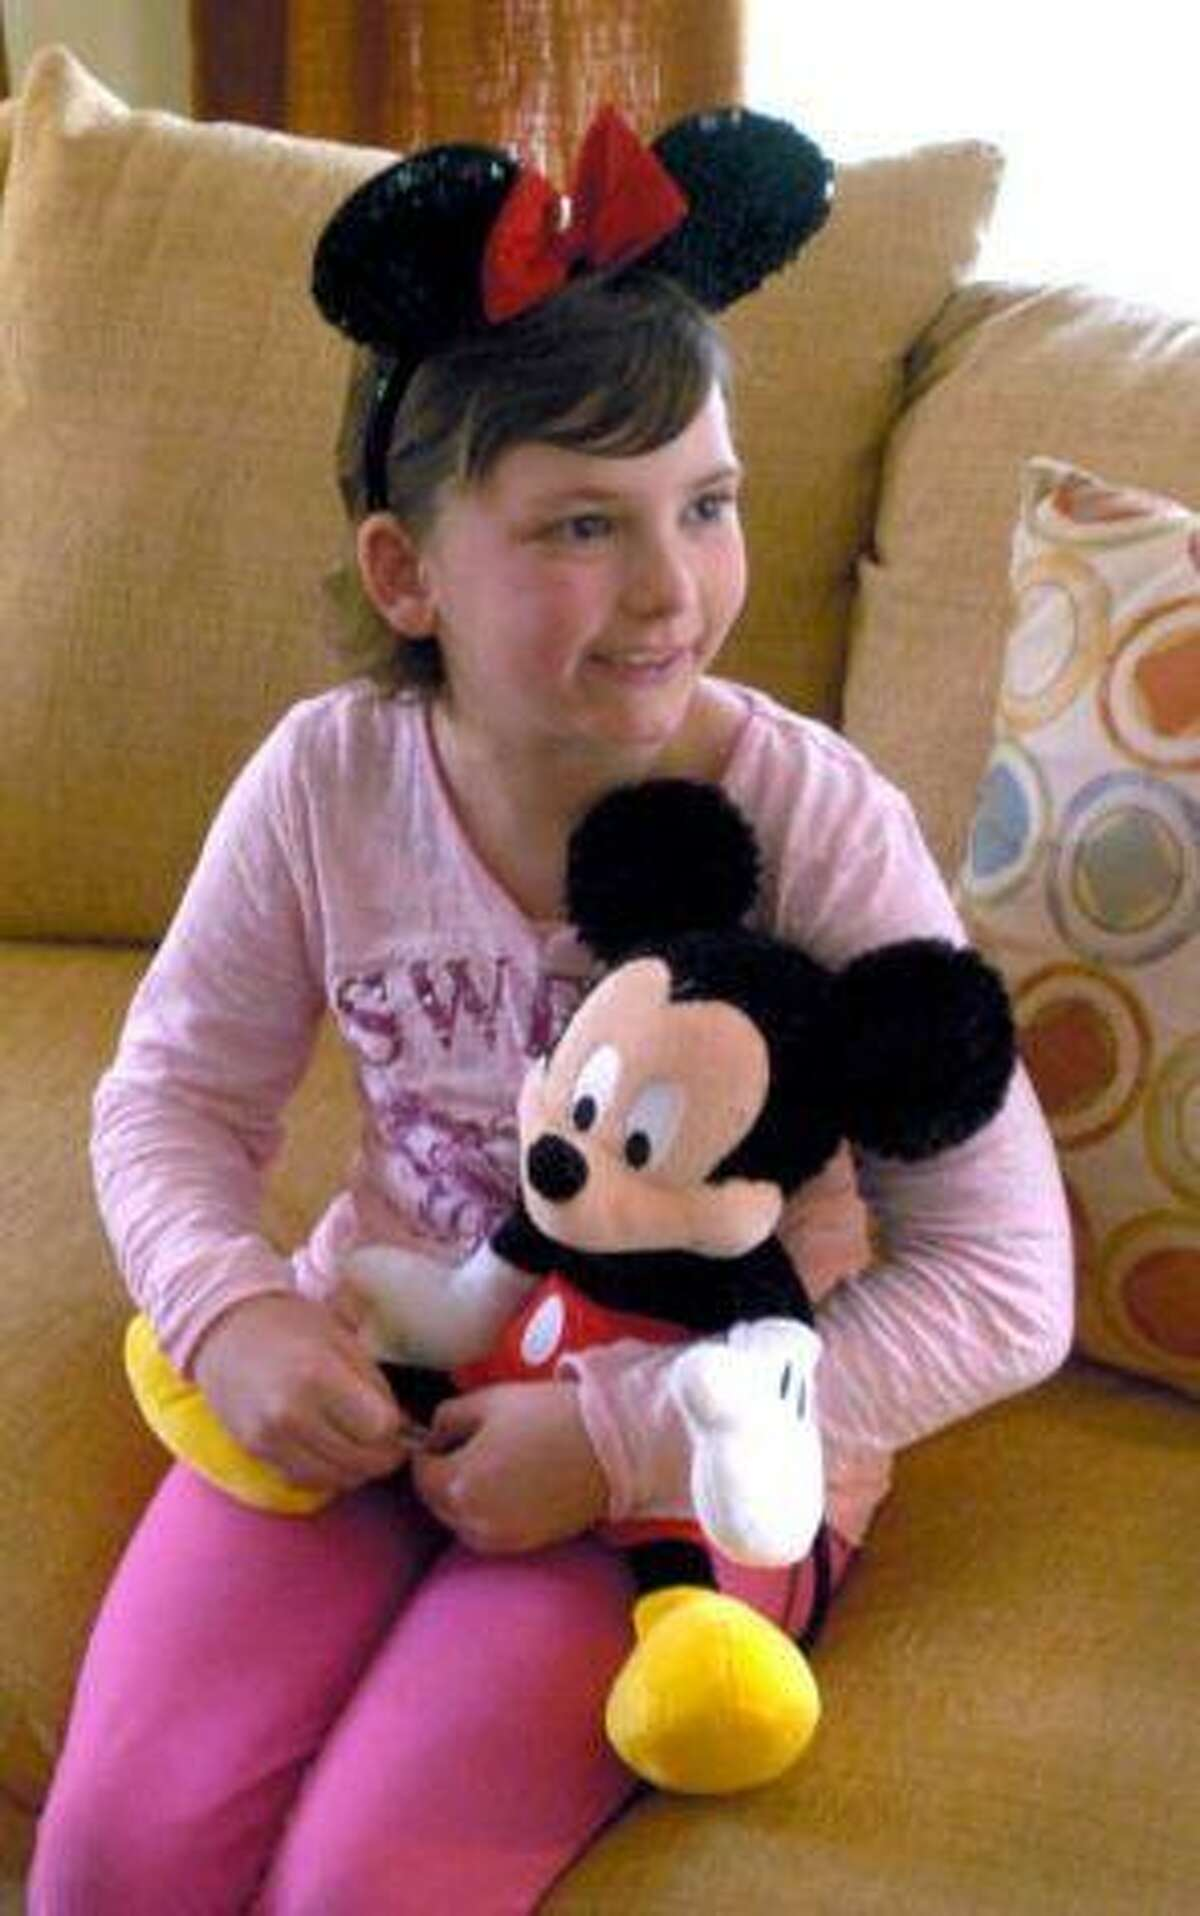 Eight-year-old Karolena Rafferty suffers from leukemia and just returned from Disney World in Orlando, Fla., after winning the trip through Dream Come True. Photo Courtesy of: Jason Rearick / CT as seen on Newstimes.com